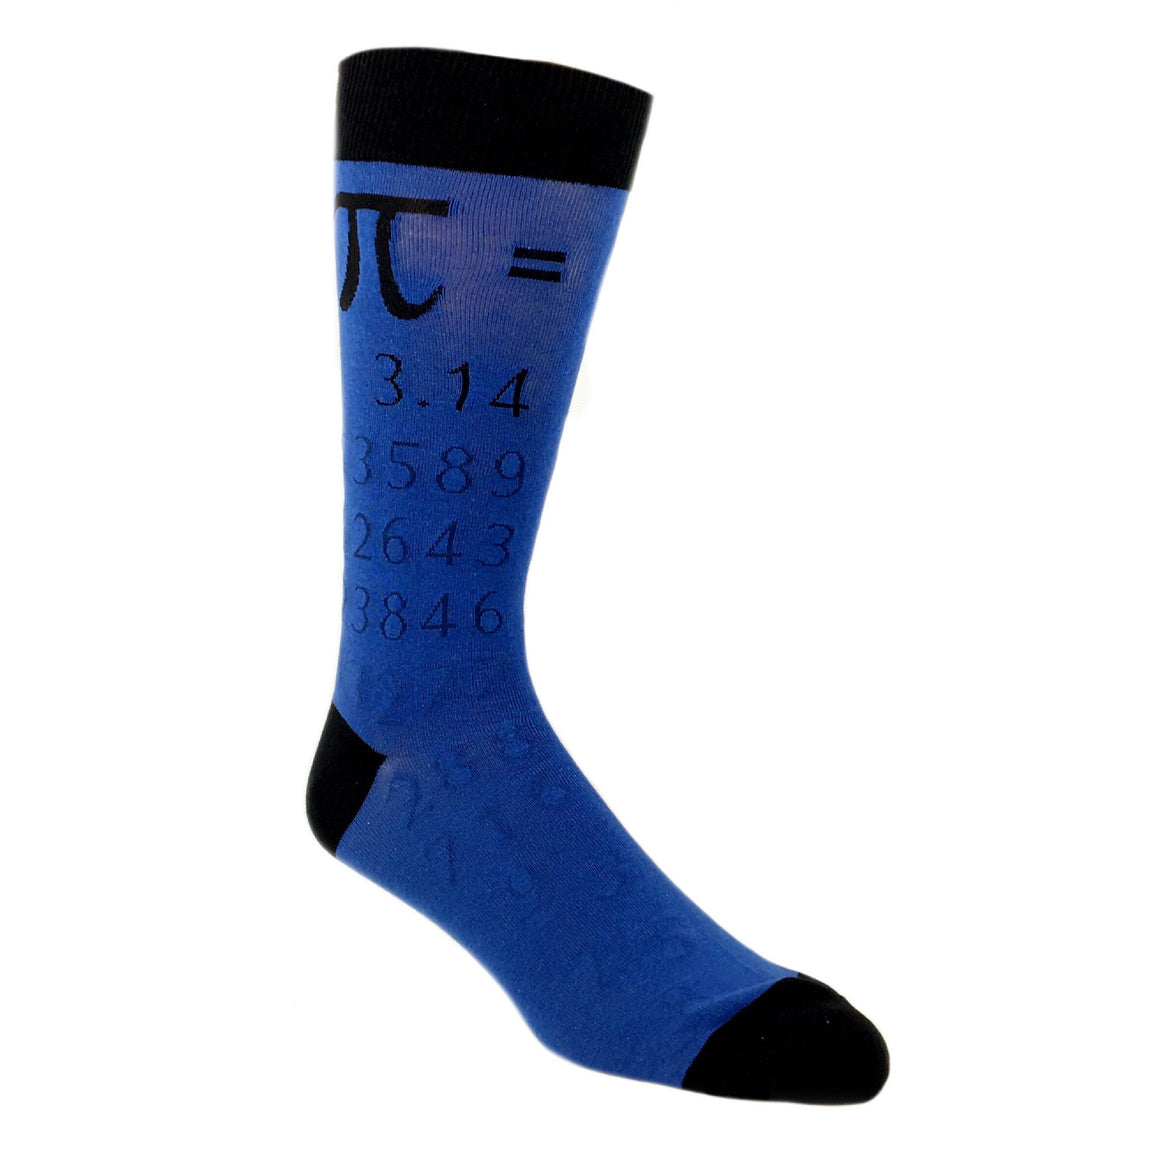 3.14... Pi Socks - The Sock Spot